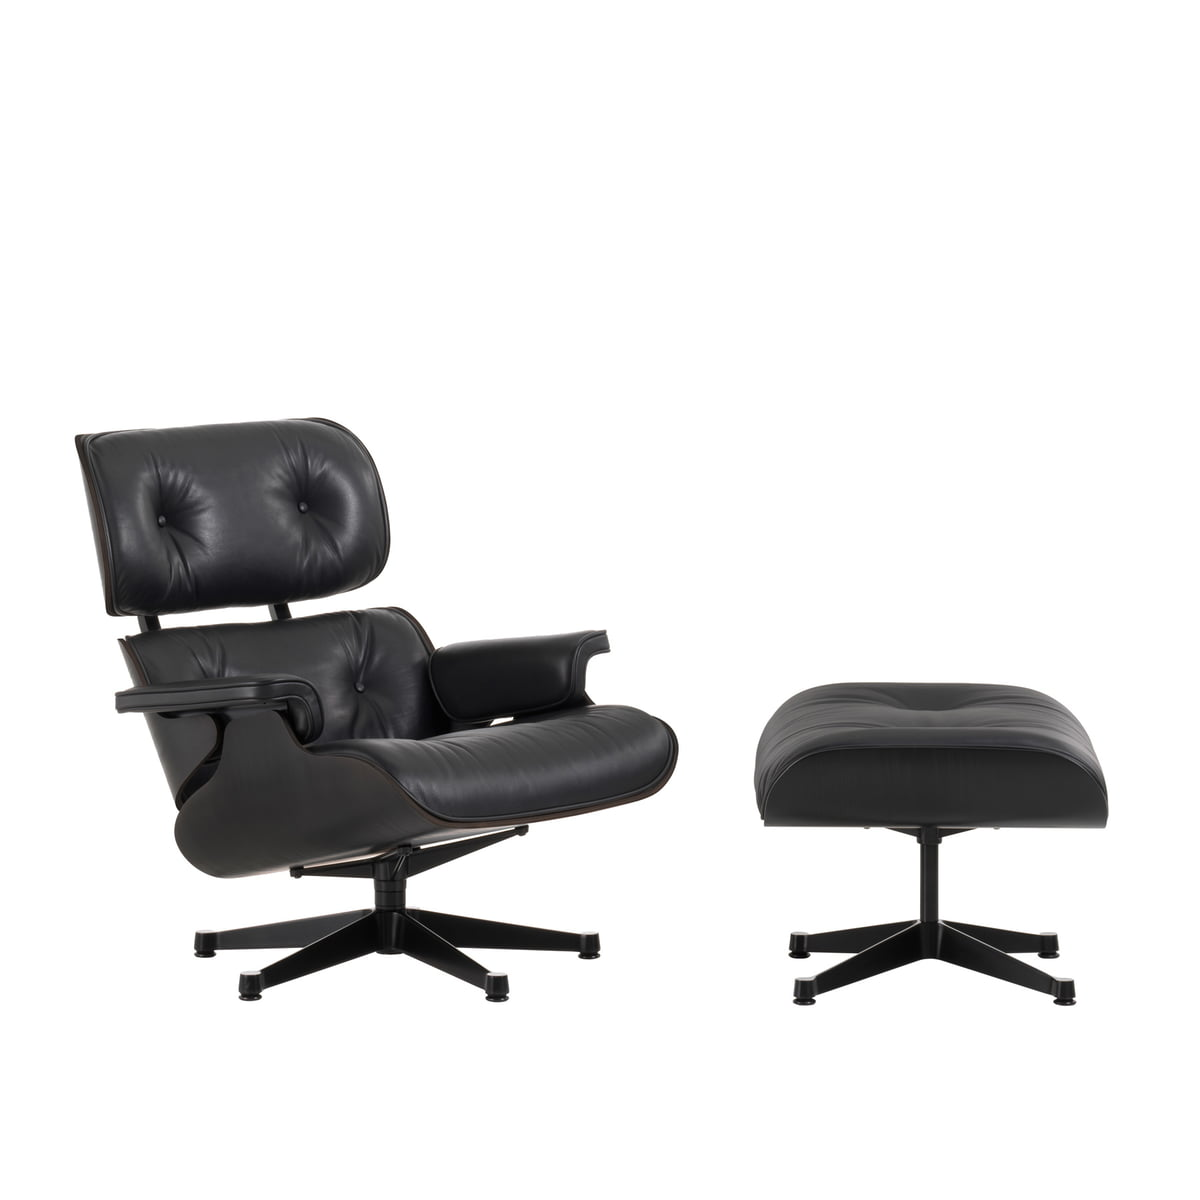 vitra lounge chair ottoman in black ash. Black Bedroom Furniture Sets. Home Design Ideas